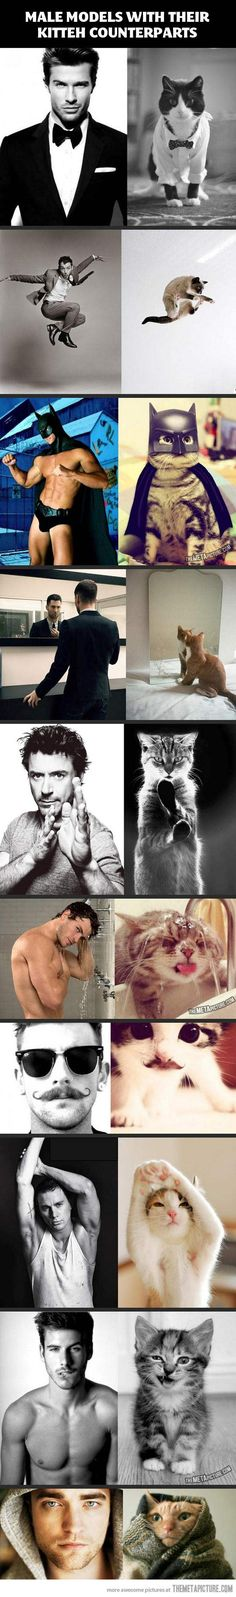 Male models vs. kittens. Kittens win